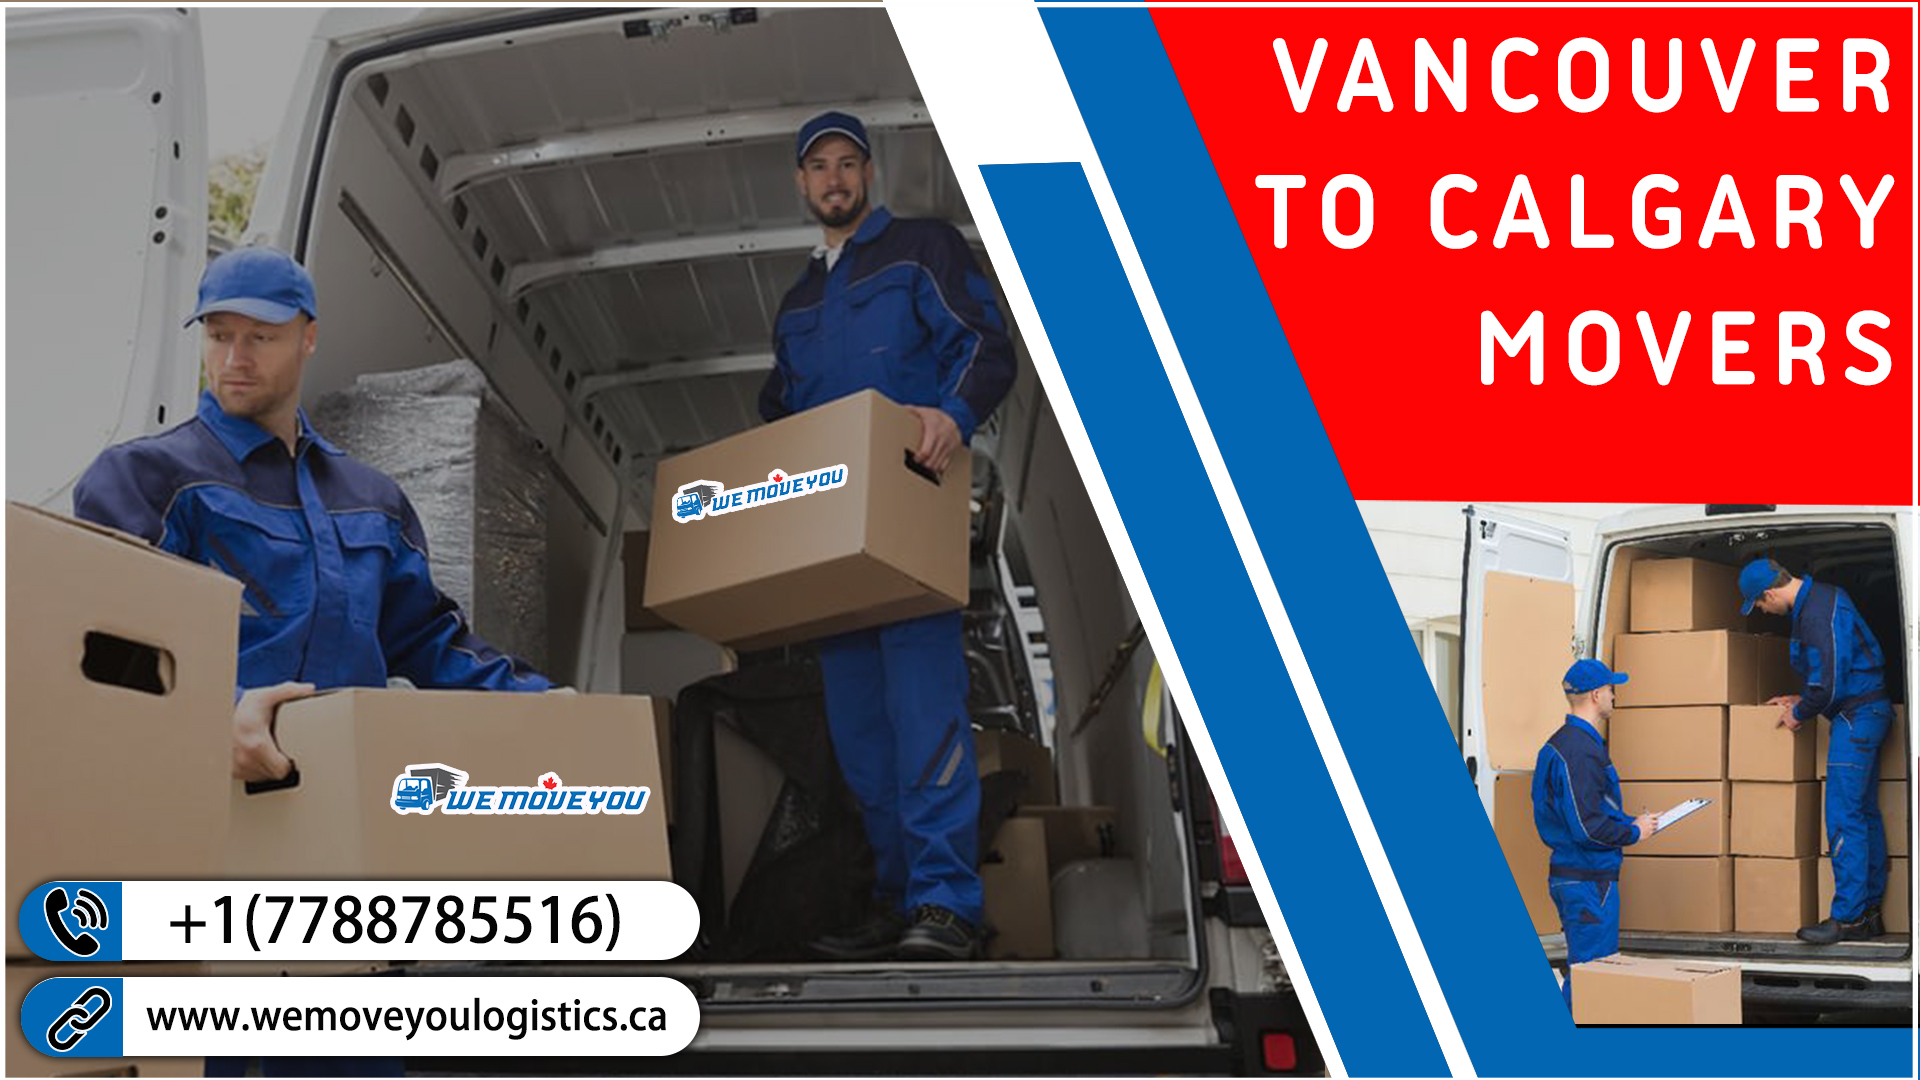 Vancouver to Calgary Movers